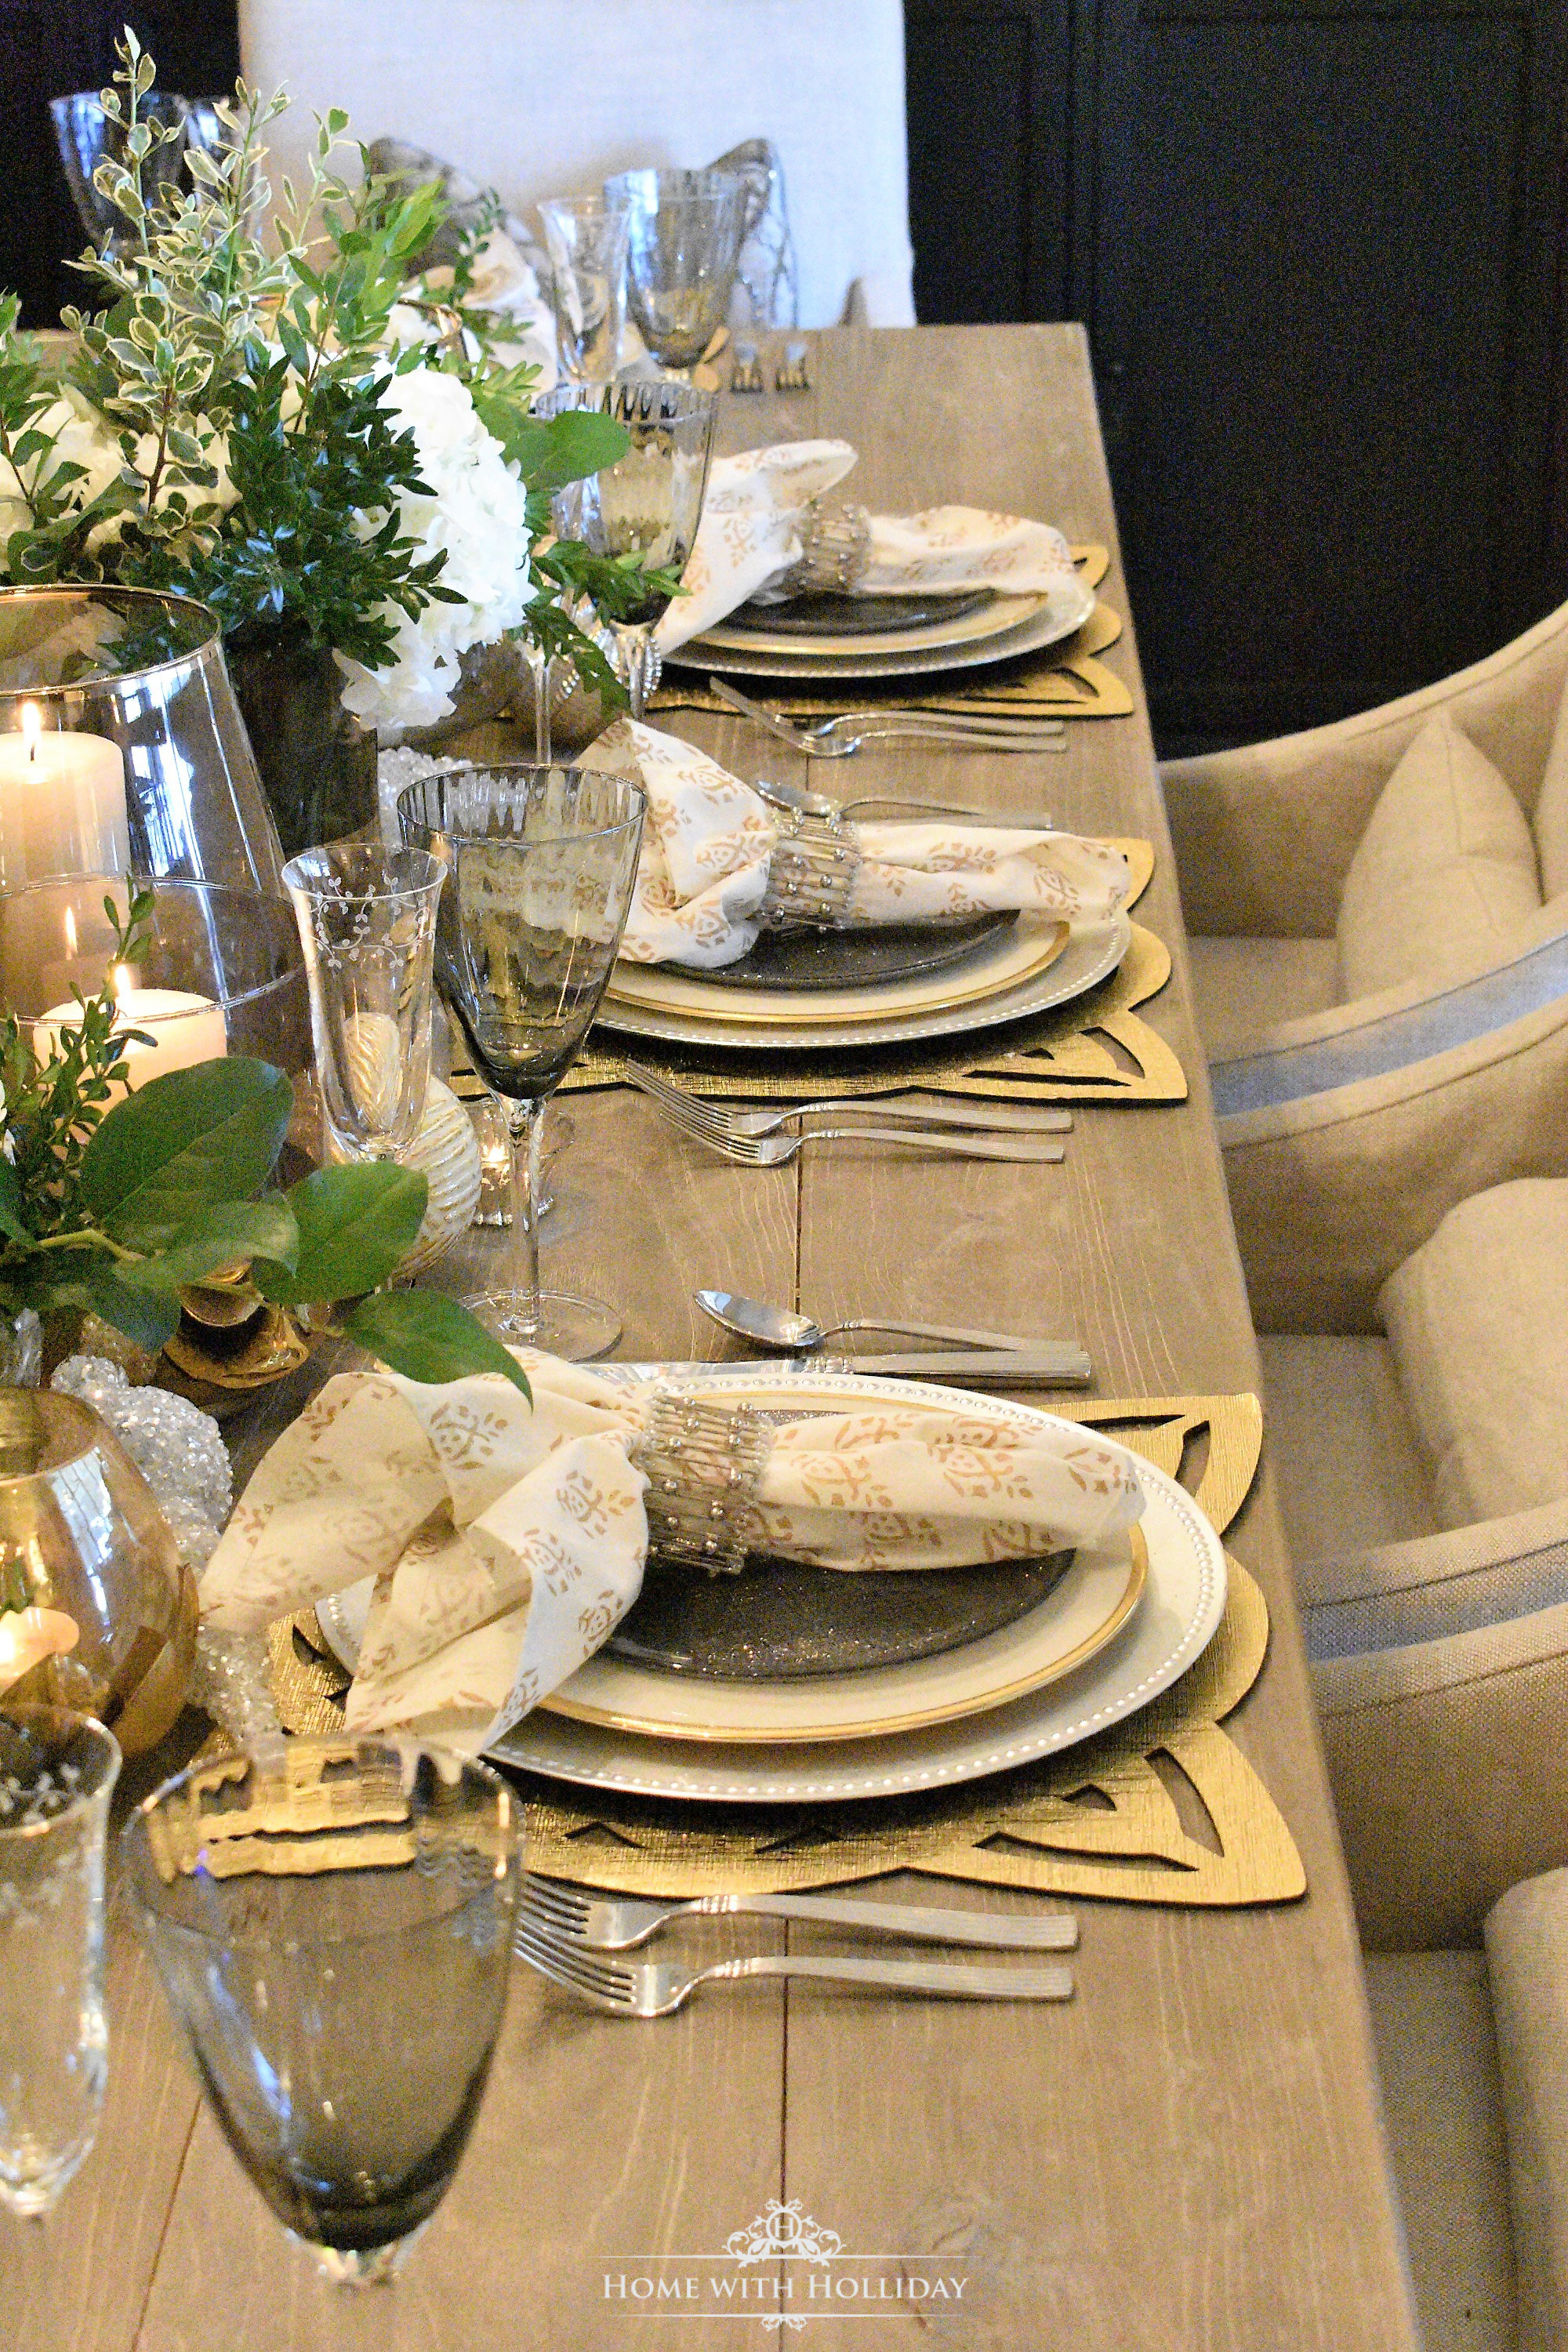 Place Settings for Gold and Silver Table Setting for New Year's Eve or Christmas